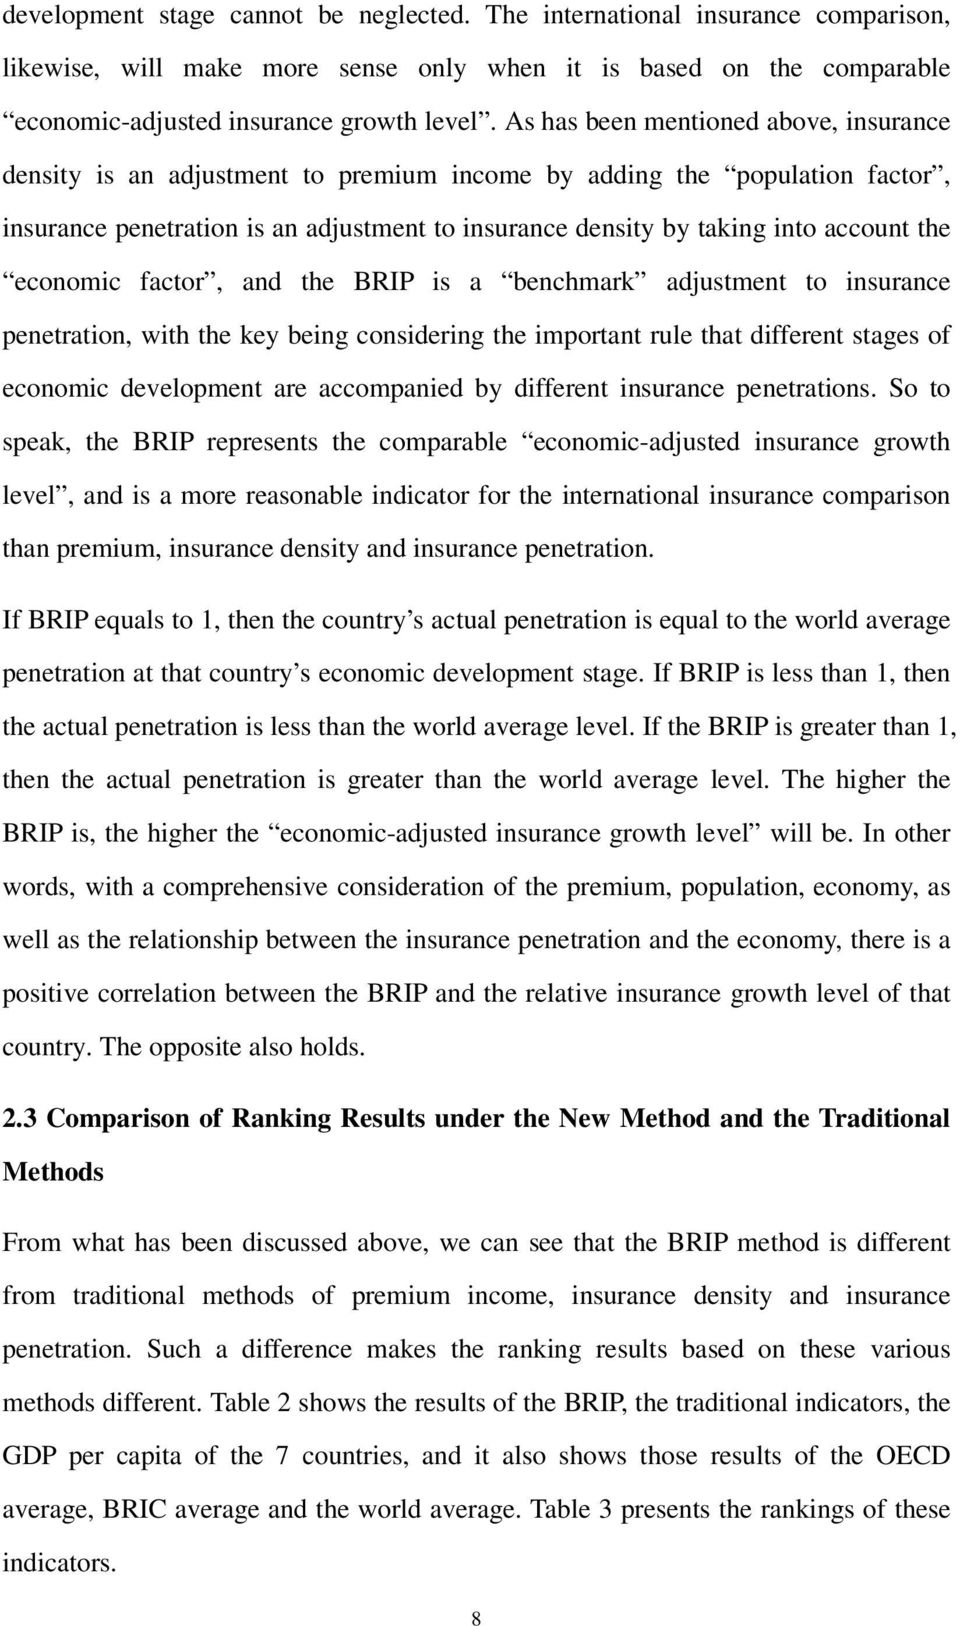 the economic factor, and the BRIP is a benchmark adjustment to insurance penetration, with the key being considering the important rule that different stages of economic development are accompanied